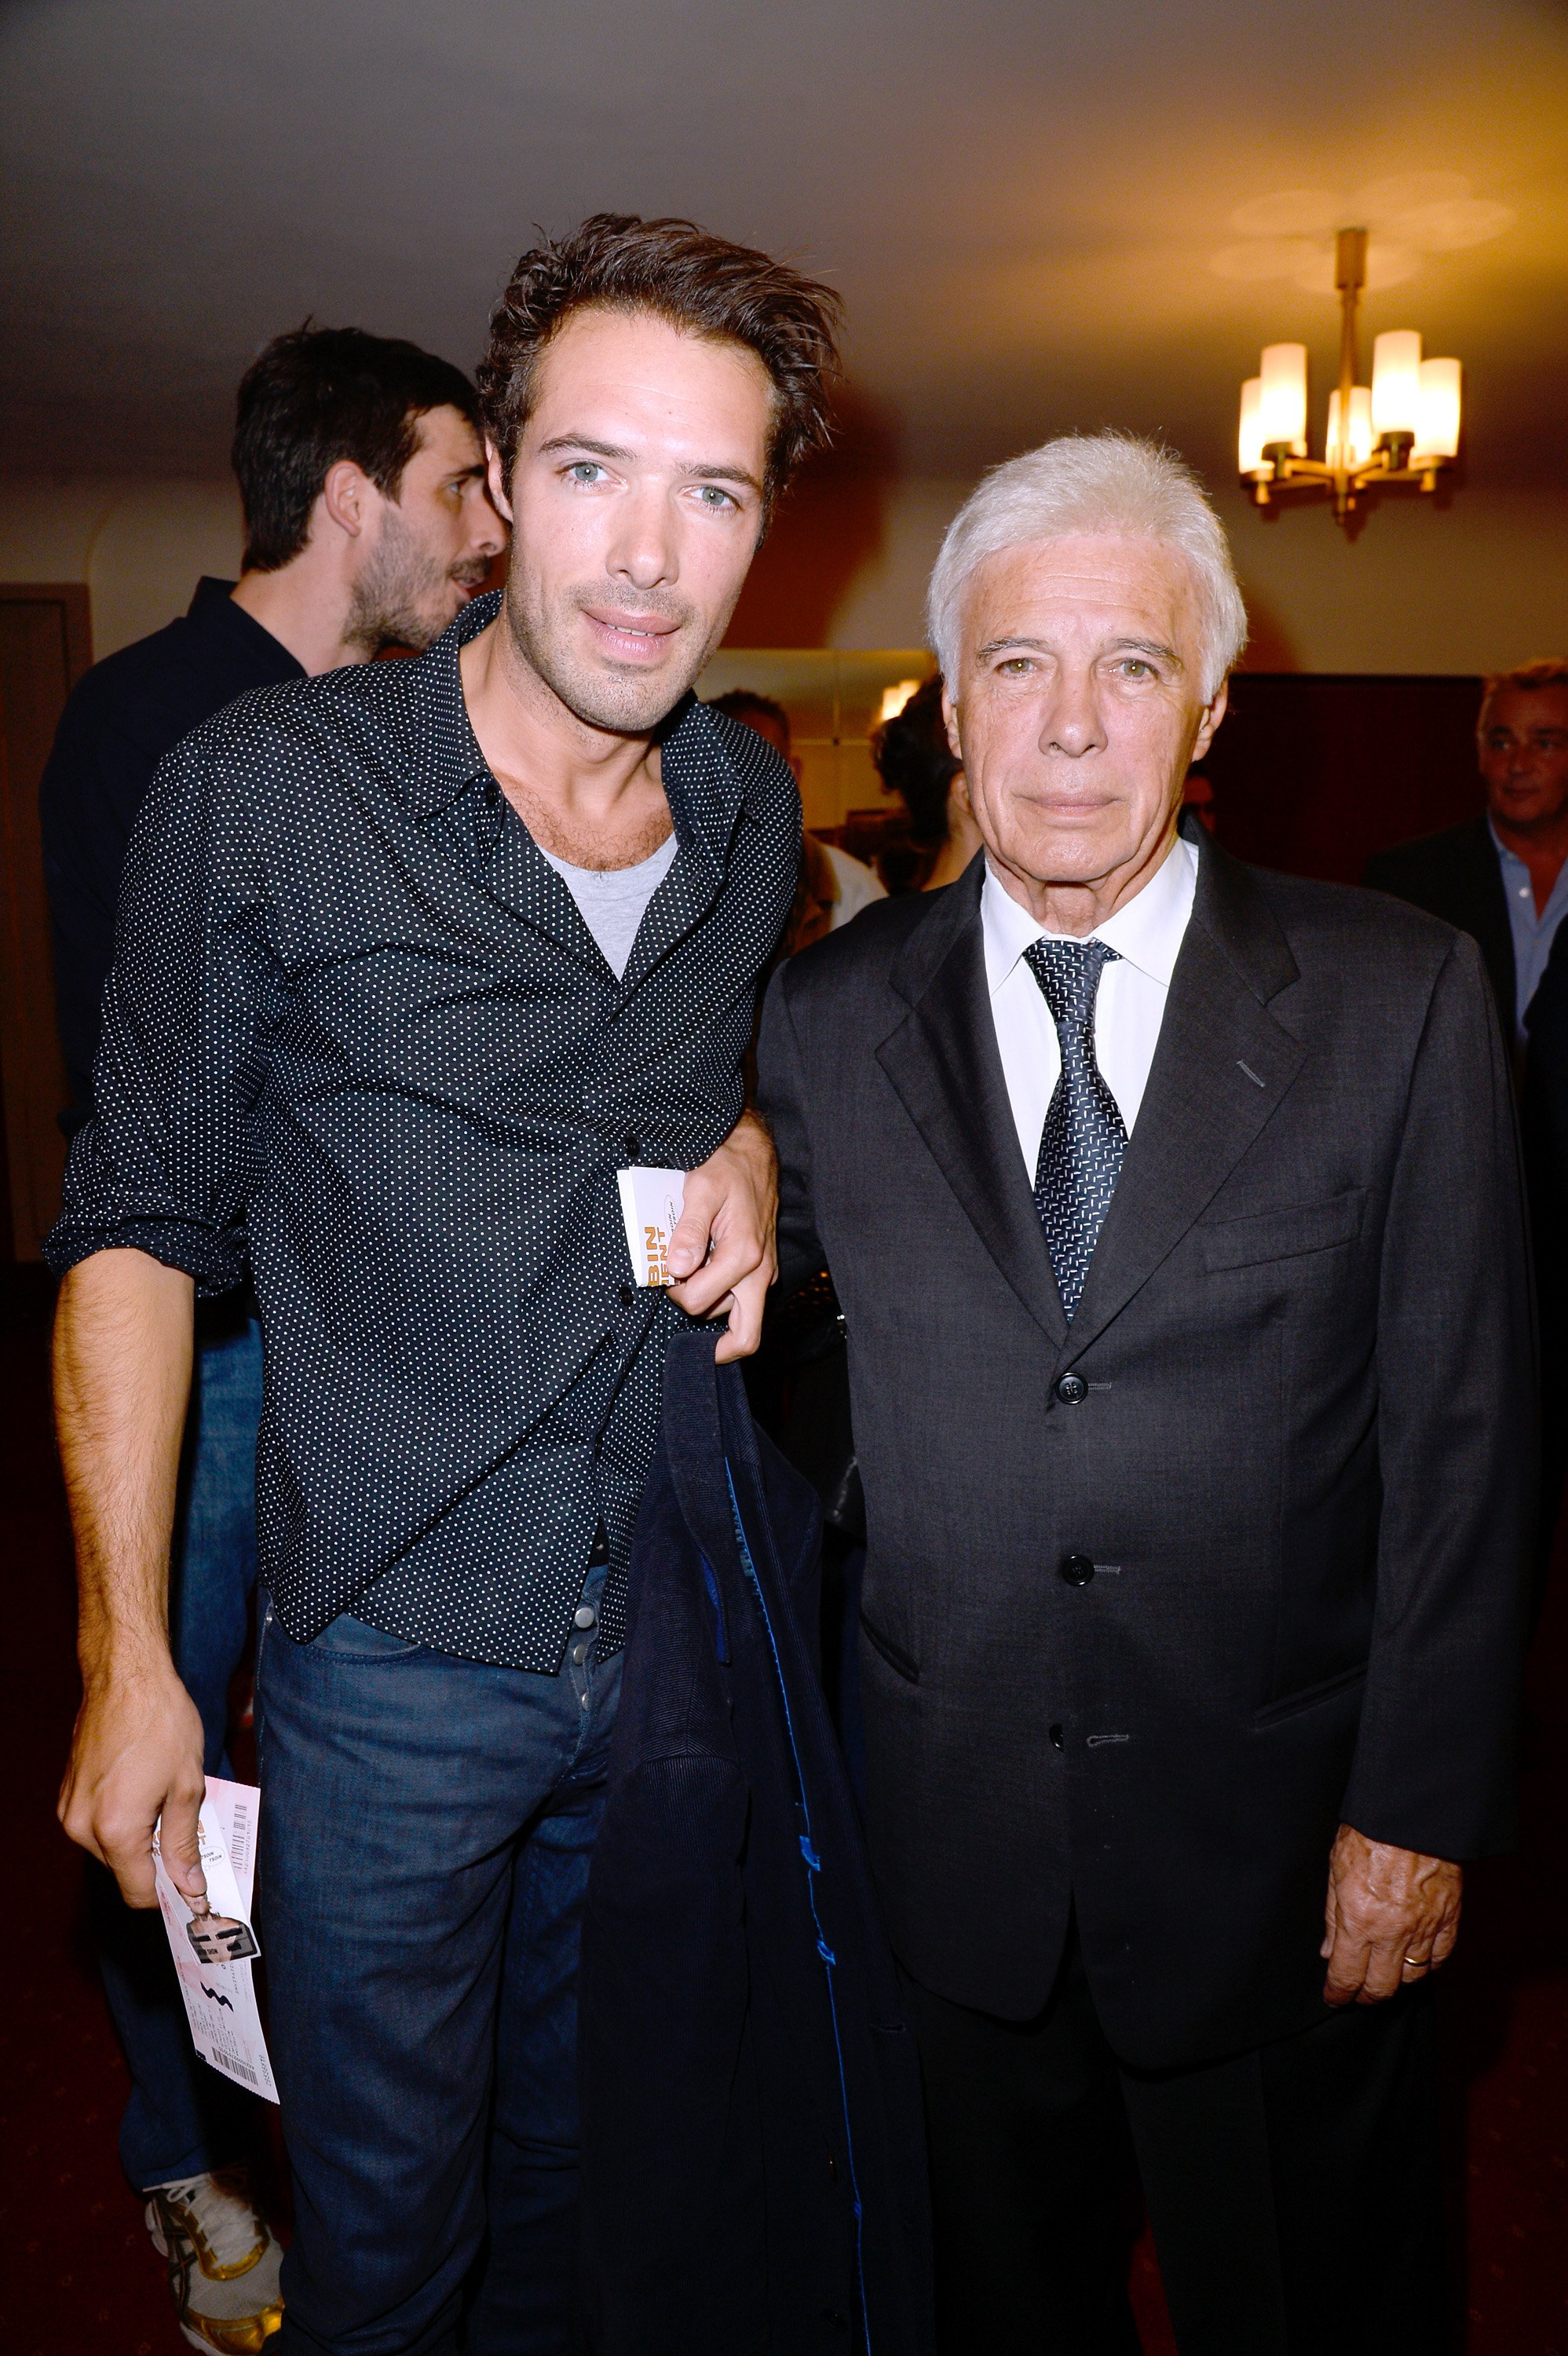 "Guy Bedos et son fils Nicolas Bedos assistent à la première du spectacle de Muriel Robin ""Robin revient 'Tsoin - Tsoin'"" au théâtre de la Porte Saint-Martin à Paris le 23 septembre 2013 à Paris, France. 